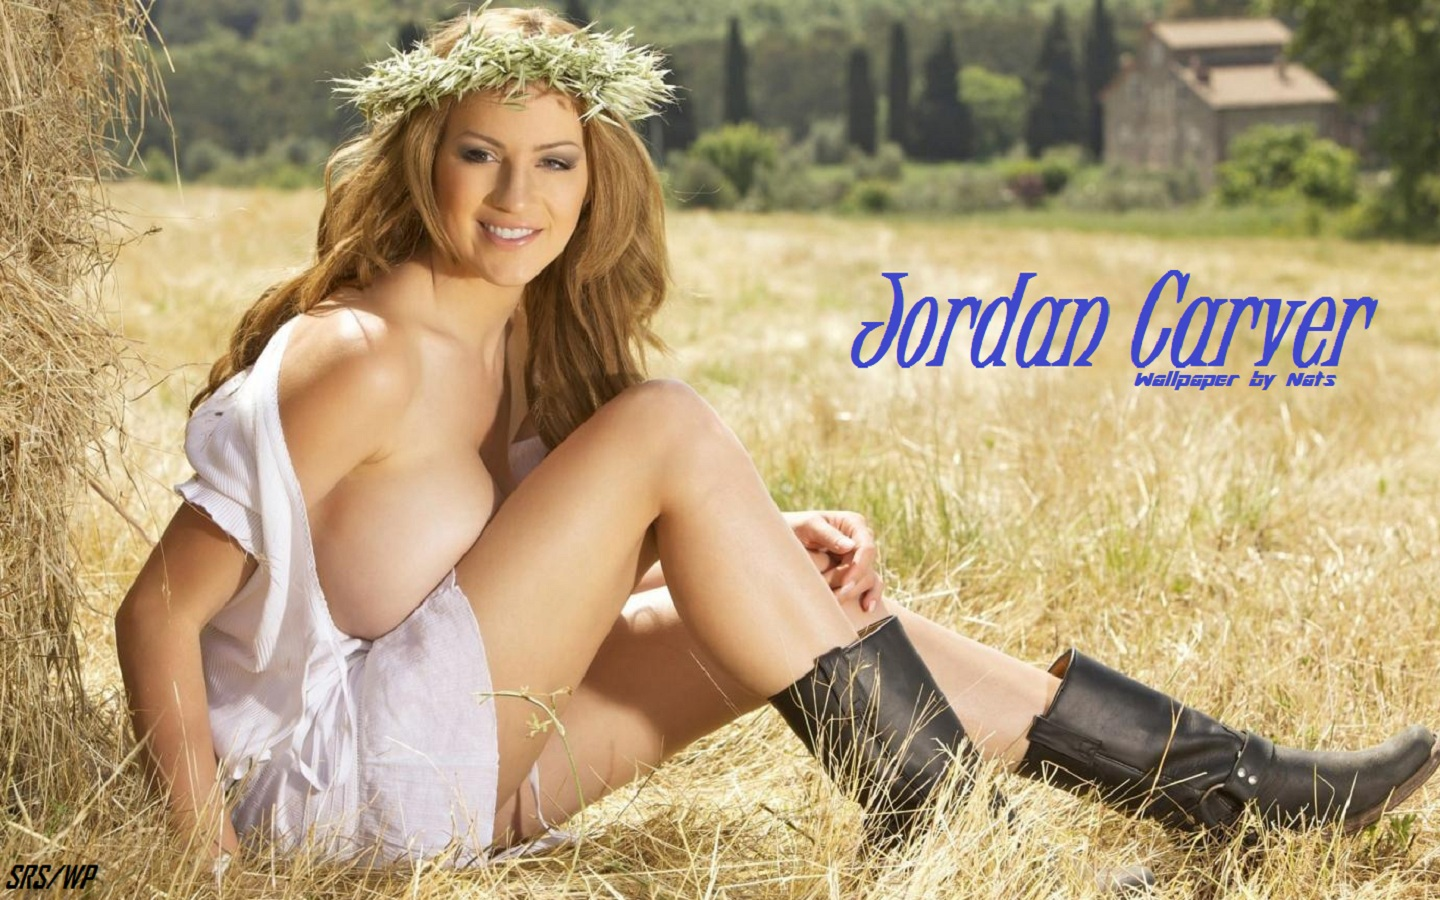 Free Download HQ Jordan Carver Wallpaper Num. 6 : 1440 X 900 419.3 Kb Wallpaper